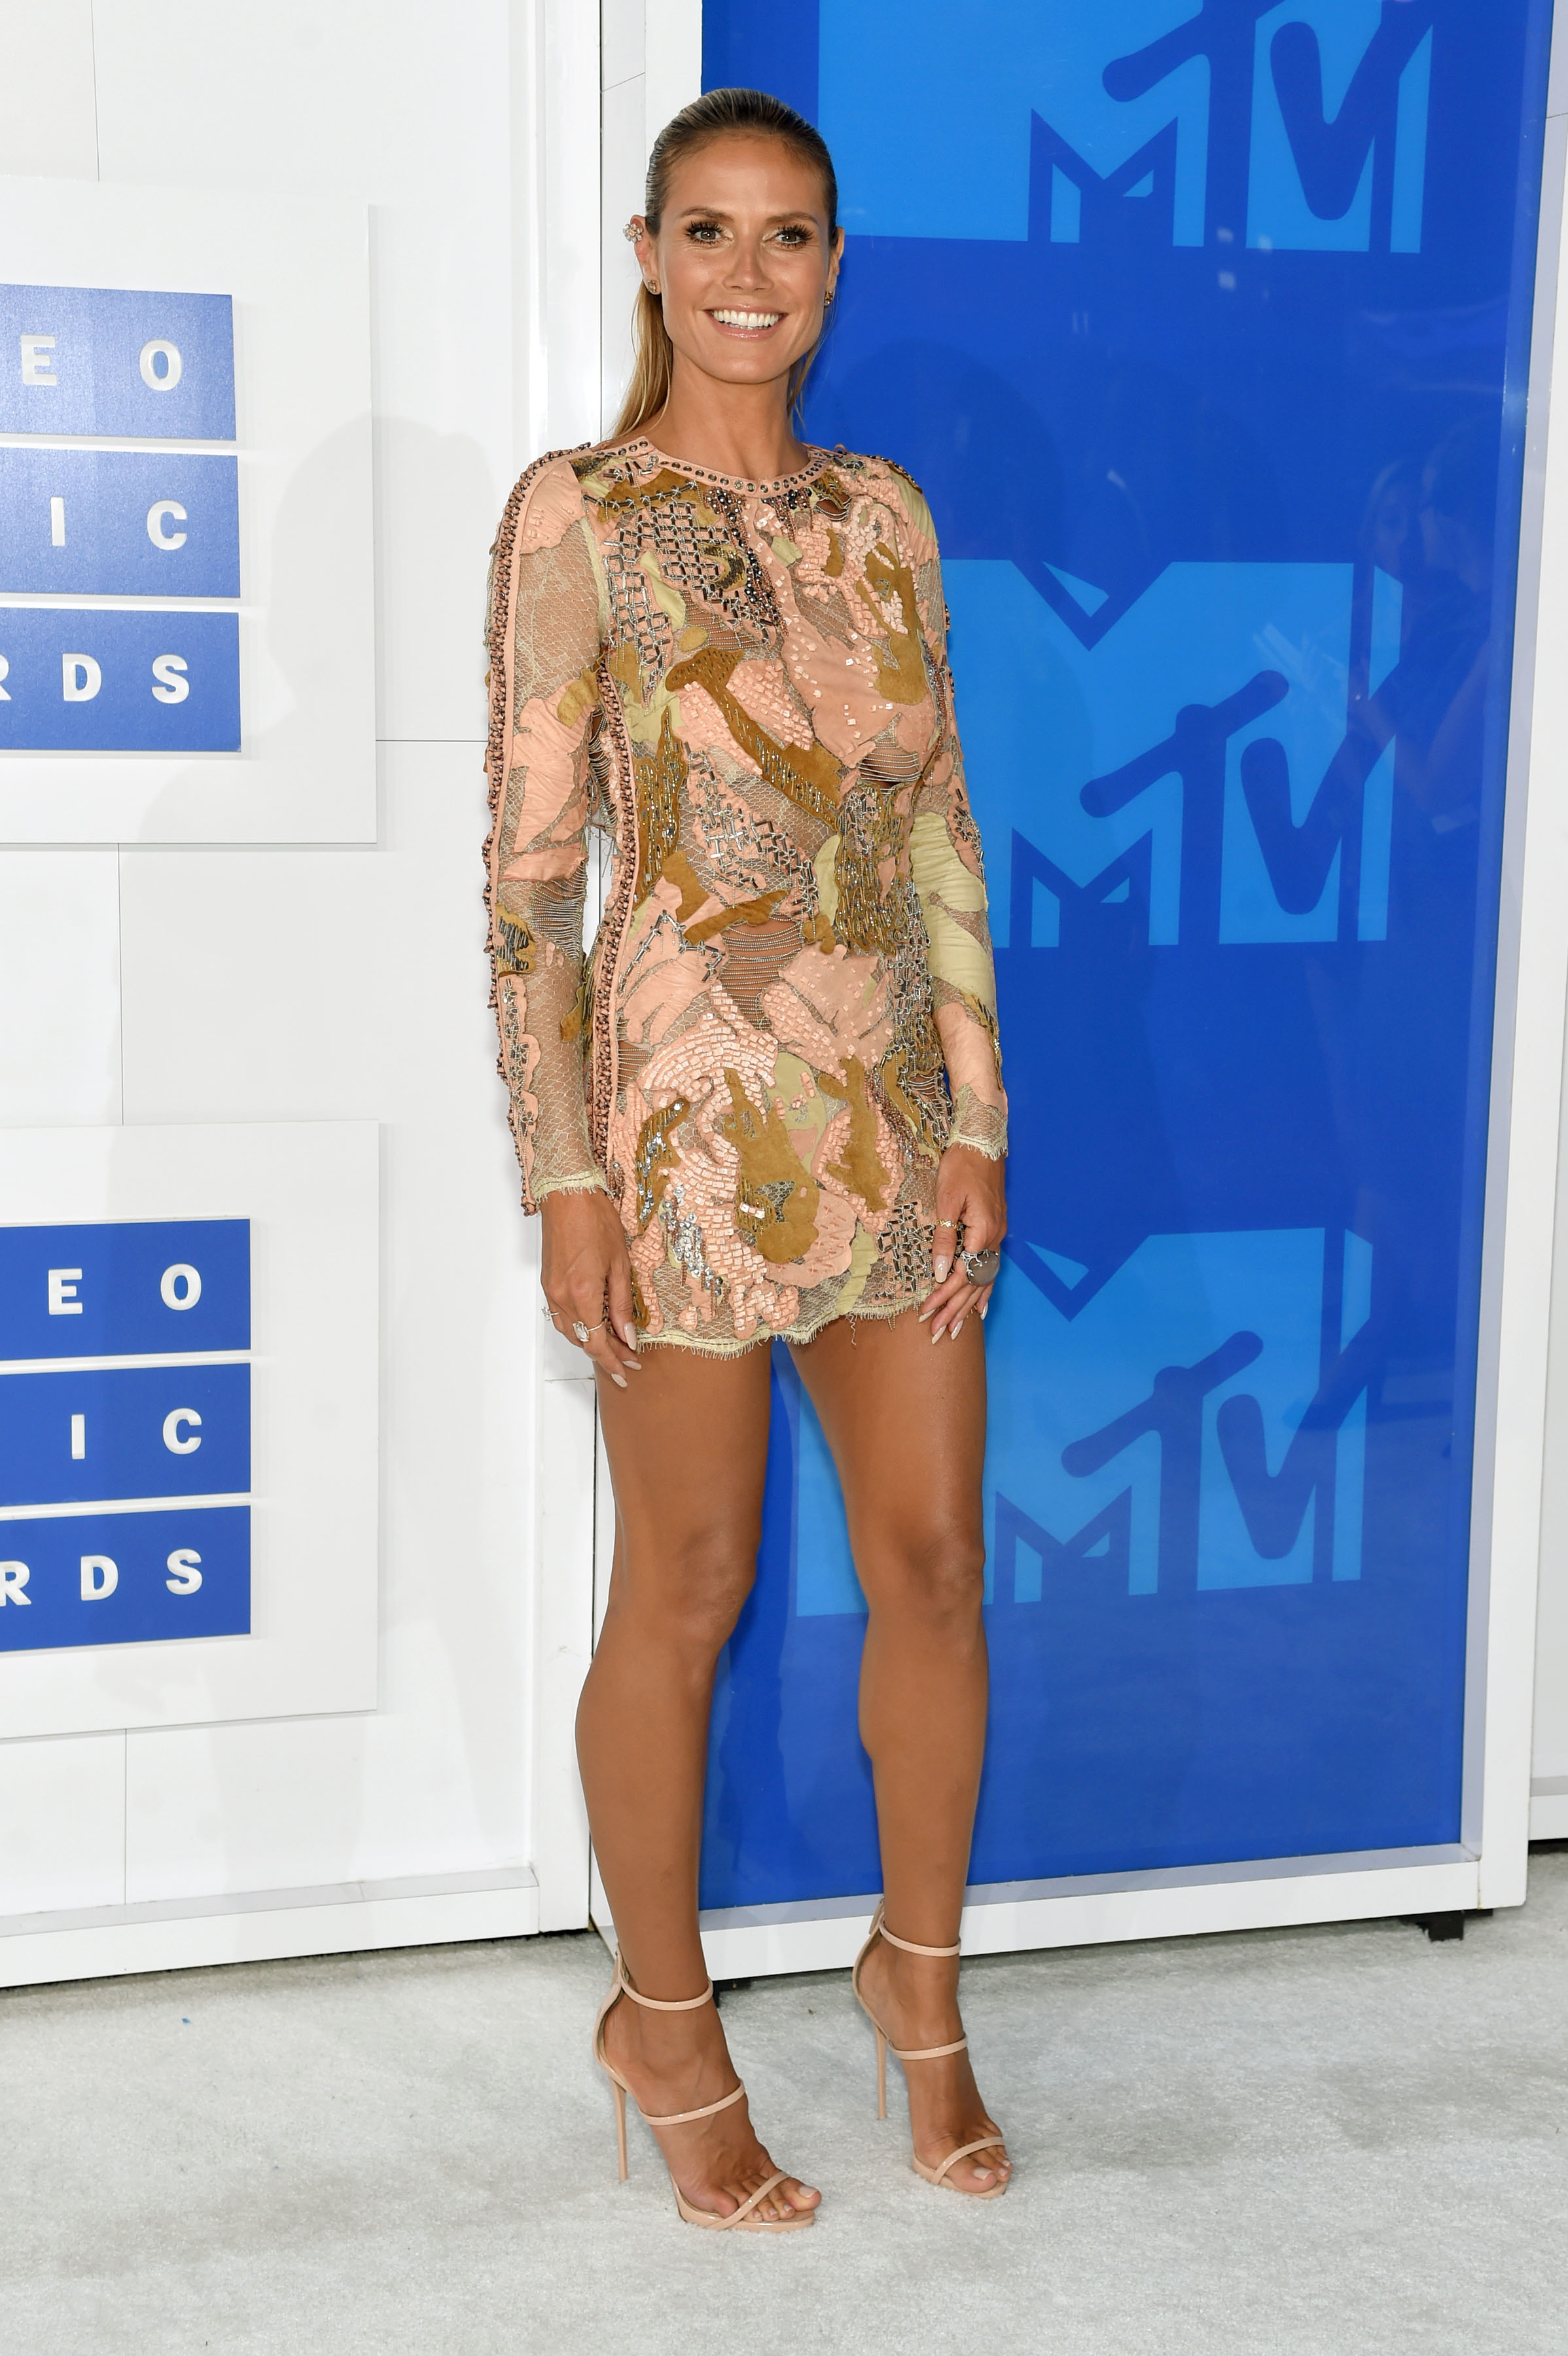 Heidi Klum attends the 2016 MTV Video Music Awards at Madison Square Garden on Aug. 28, 2016 in New York City.